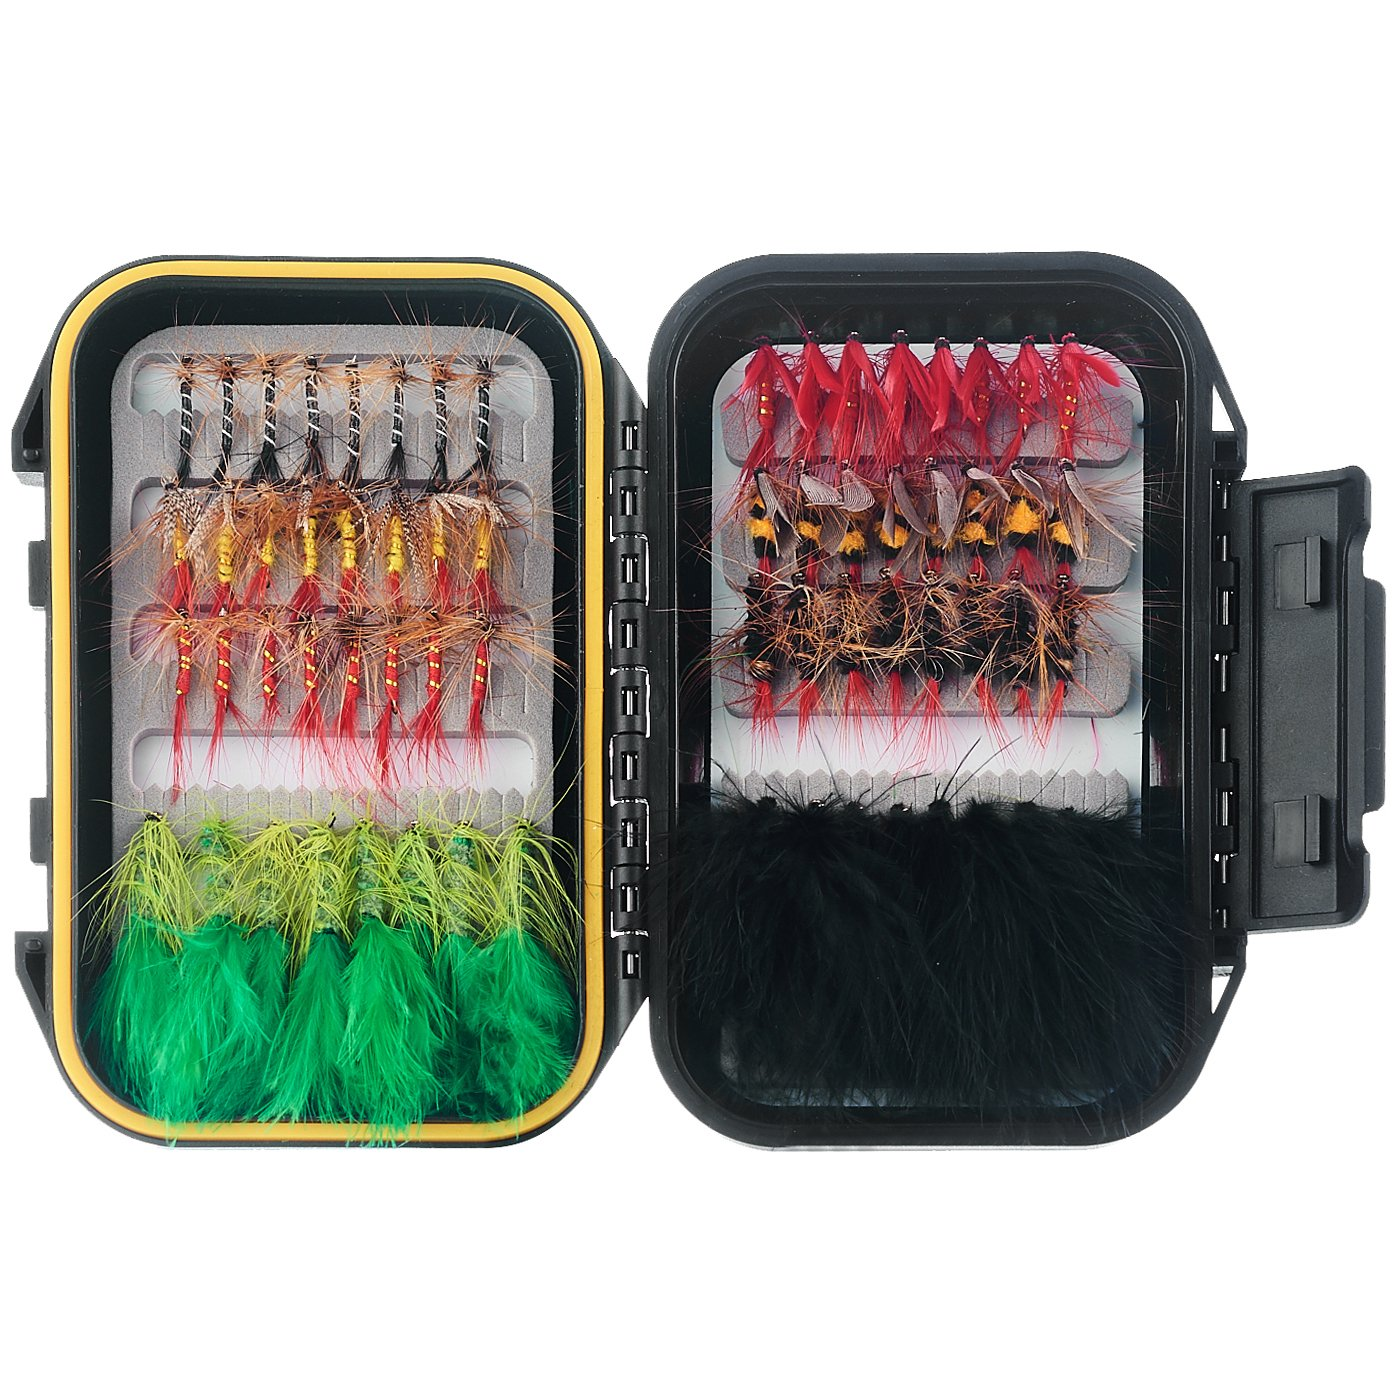 FISHINGSIR 64 PCS Fly Fishing Flies Set Included Dry Flies,Wet Flies,Streamer, Nymph, Emerger Kit with Waterproof Fly Box by FISHINGSIR (Image #1)